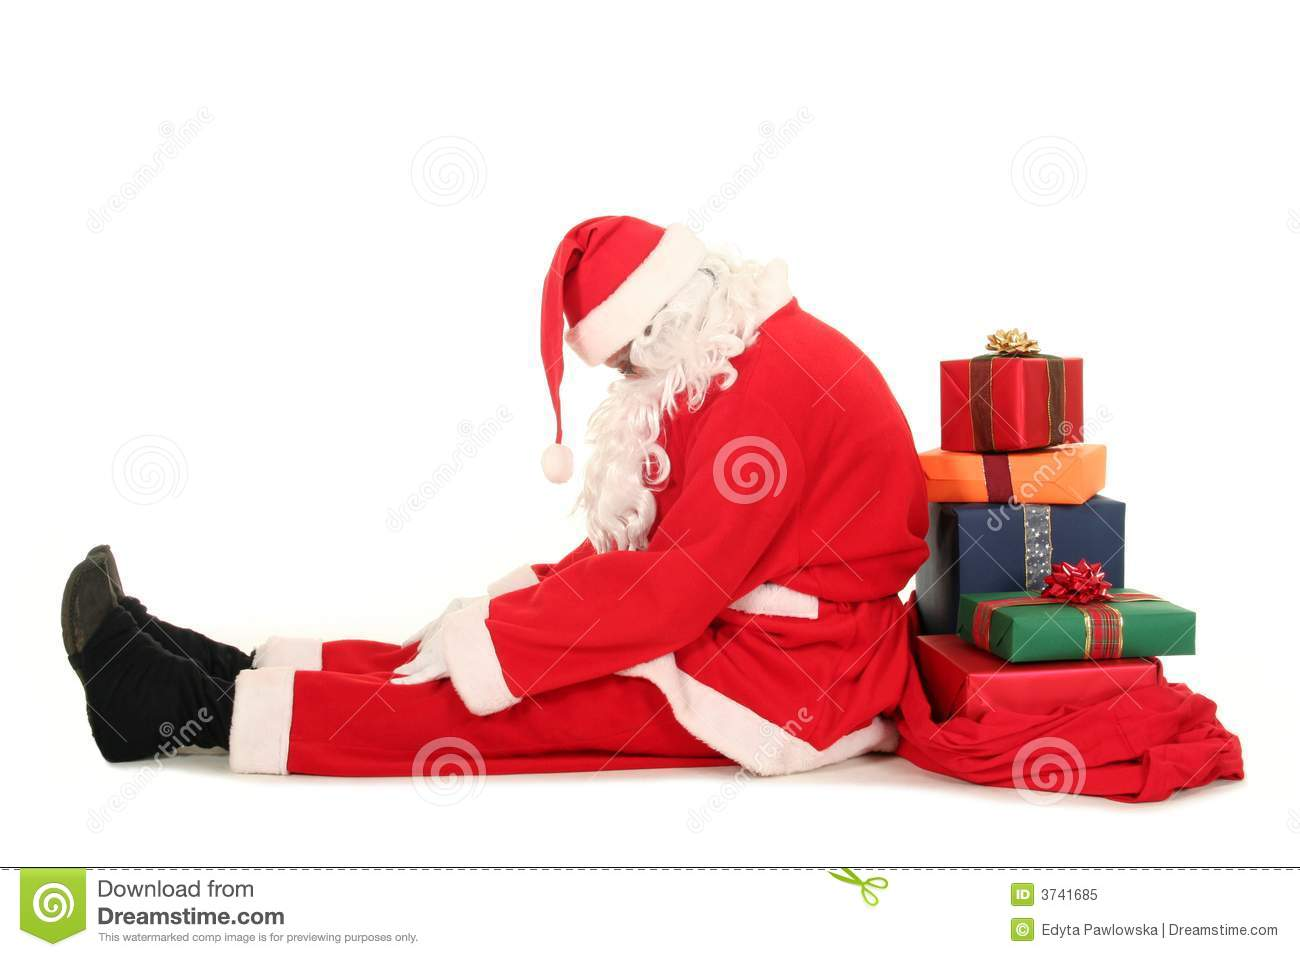 Santa Claus sitting on floor with bag of Christmas presents.